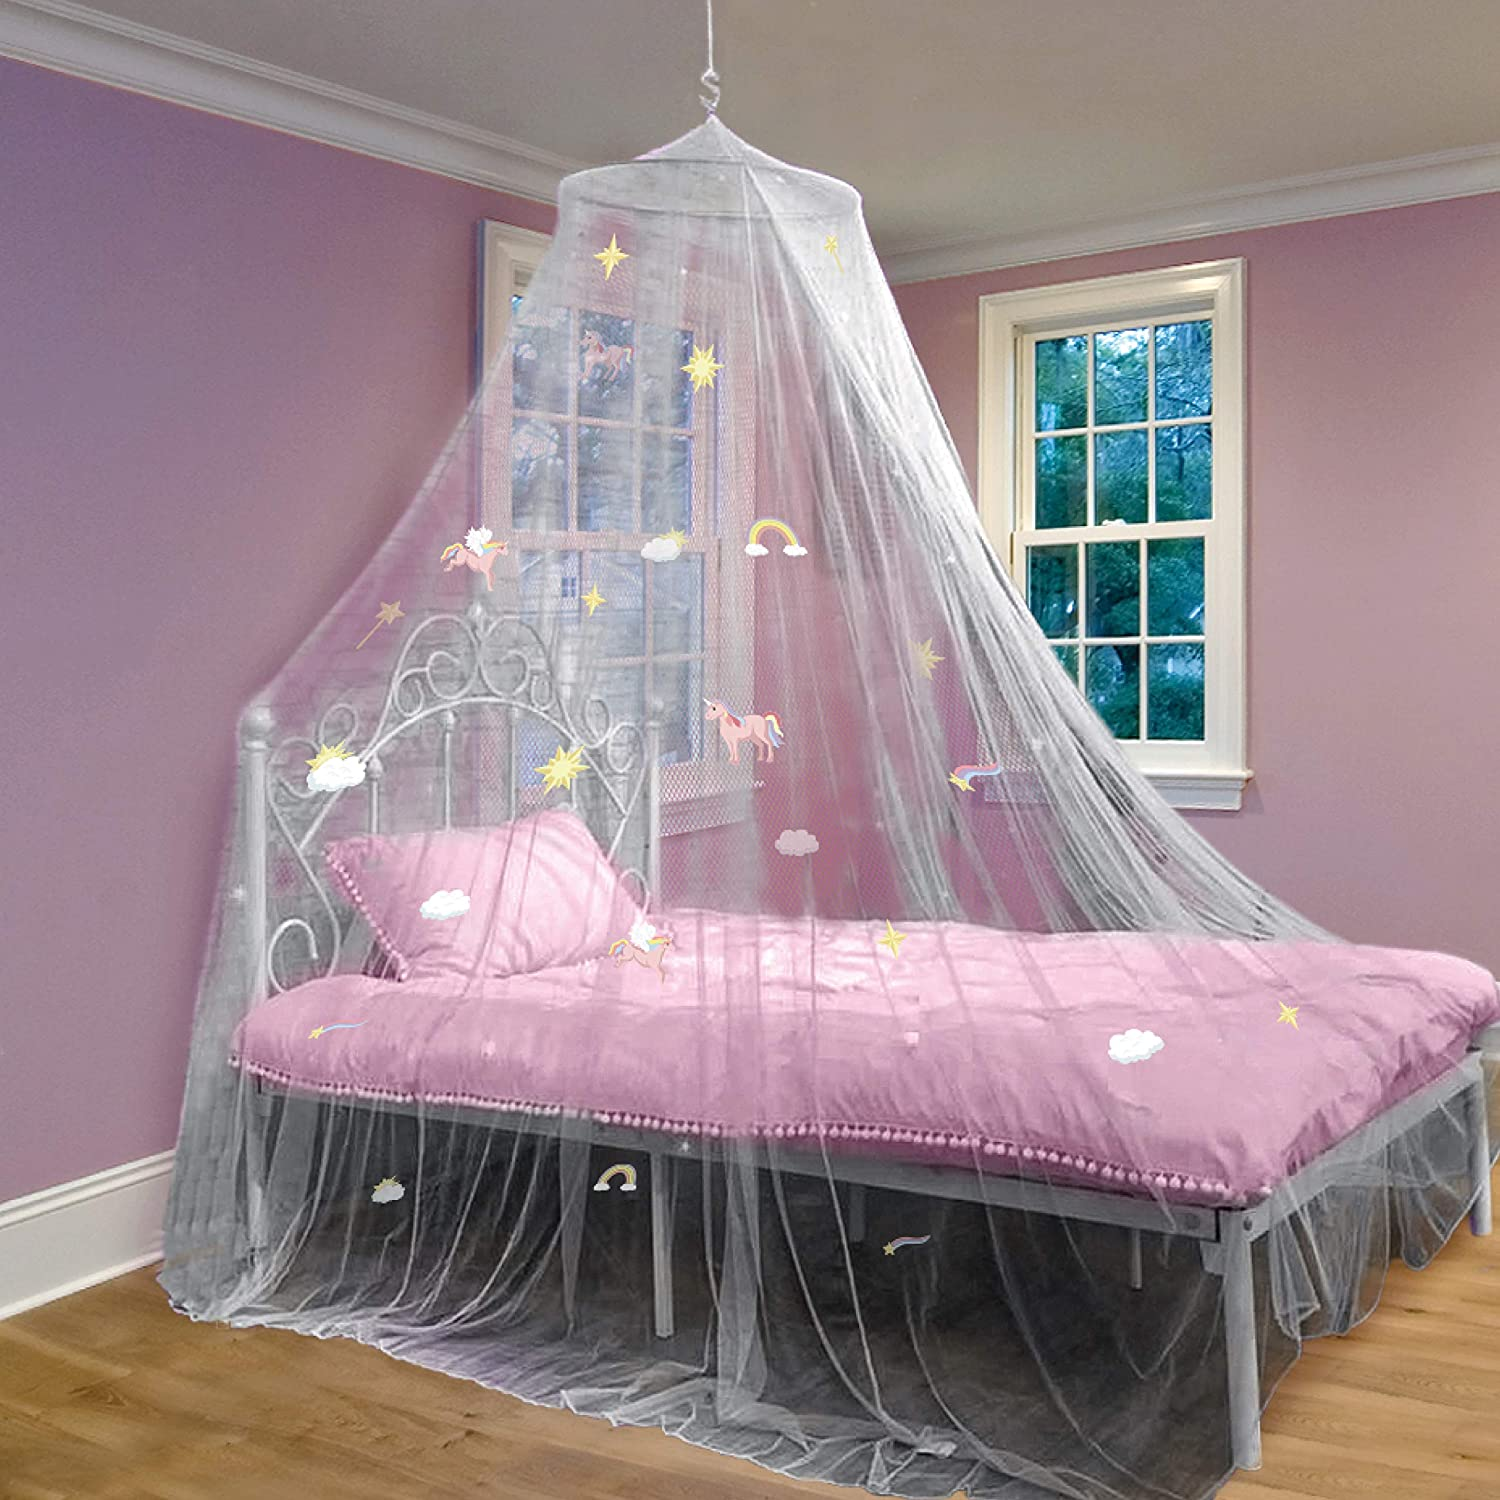 Bed Canopy with Glow in The Dark Unicorns, Stars and Rainbows for Girls, Kids & Babies, Net Use to Cover The Baby Crib, Kid Bed, Girls Bed Or Full Size Bed, Fire Retardant Fabric, White